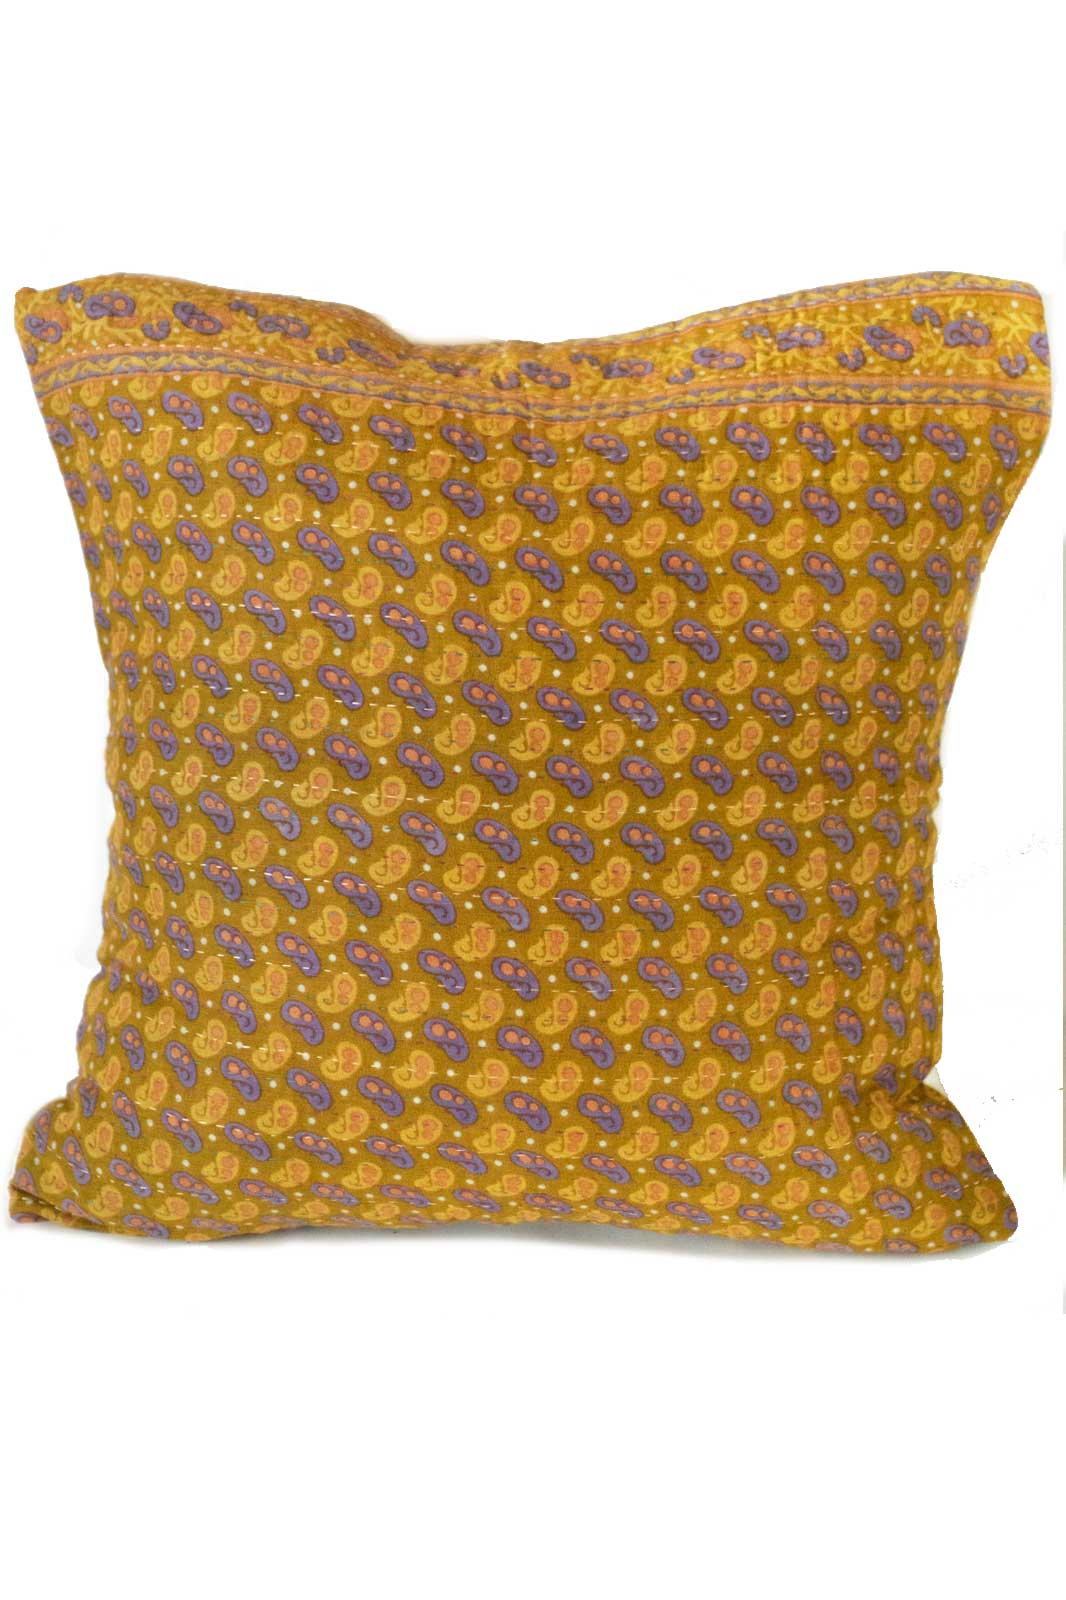 Beauty no. 4 Kantha Pillow Cover